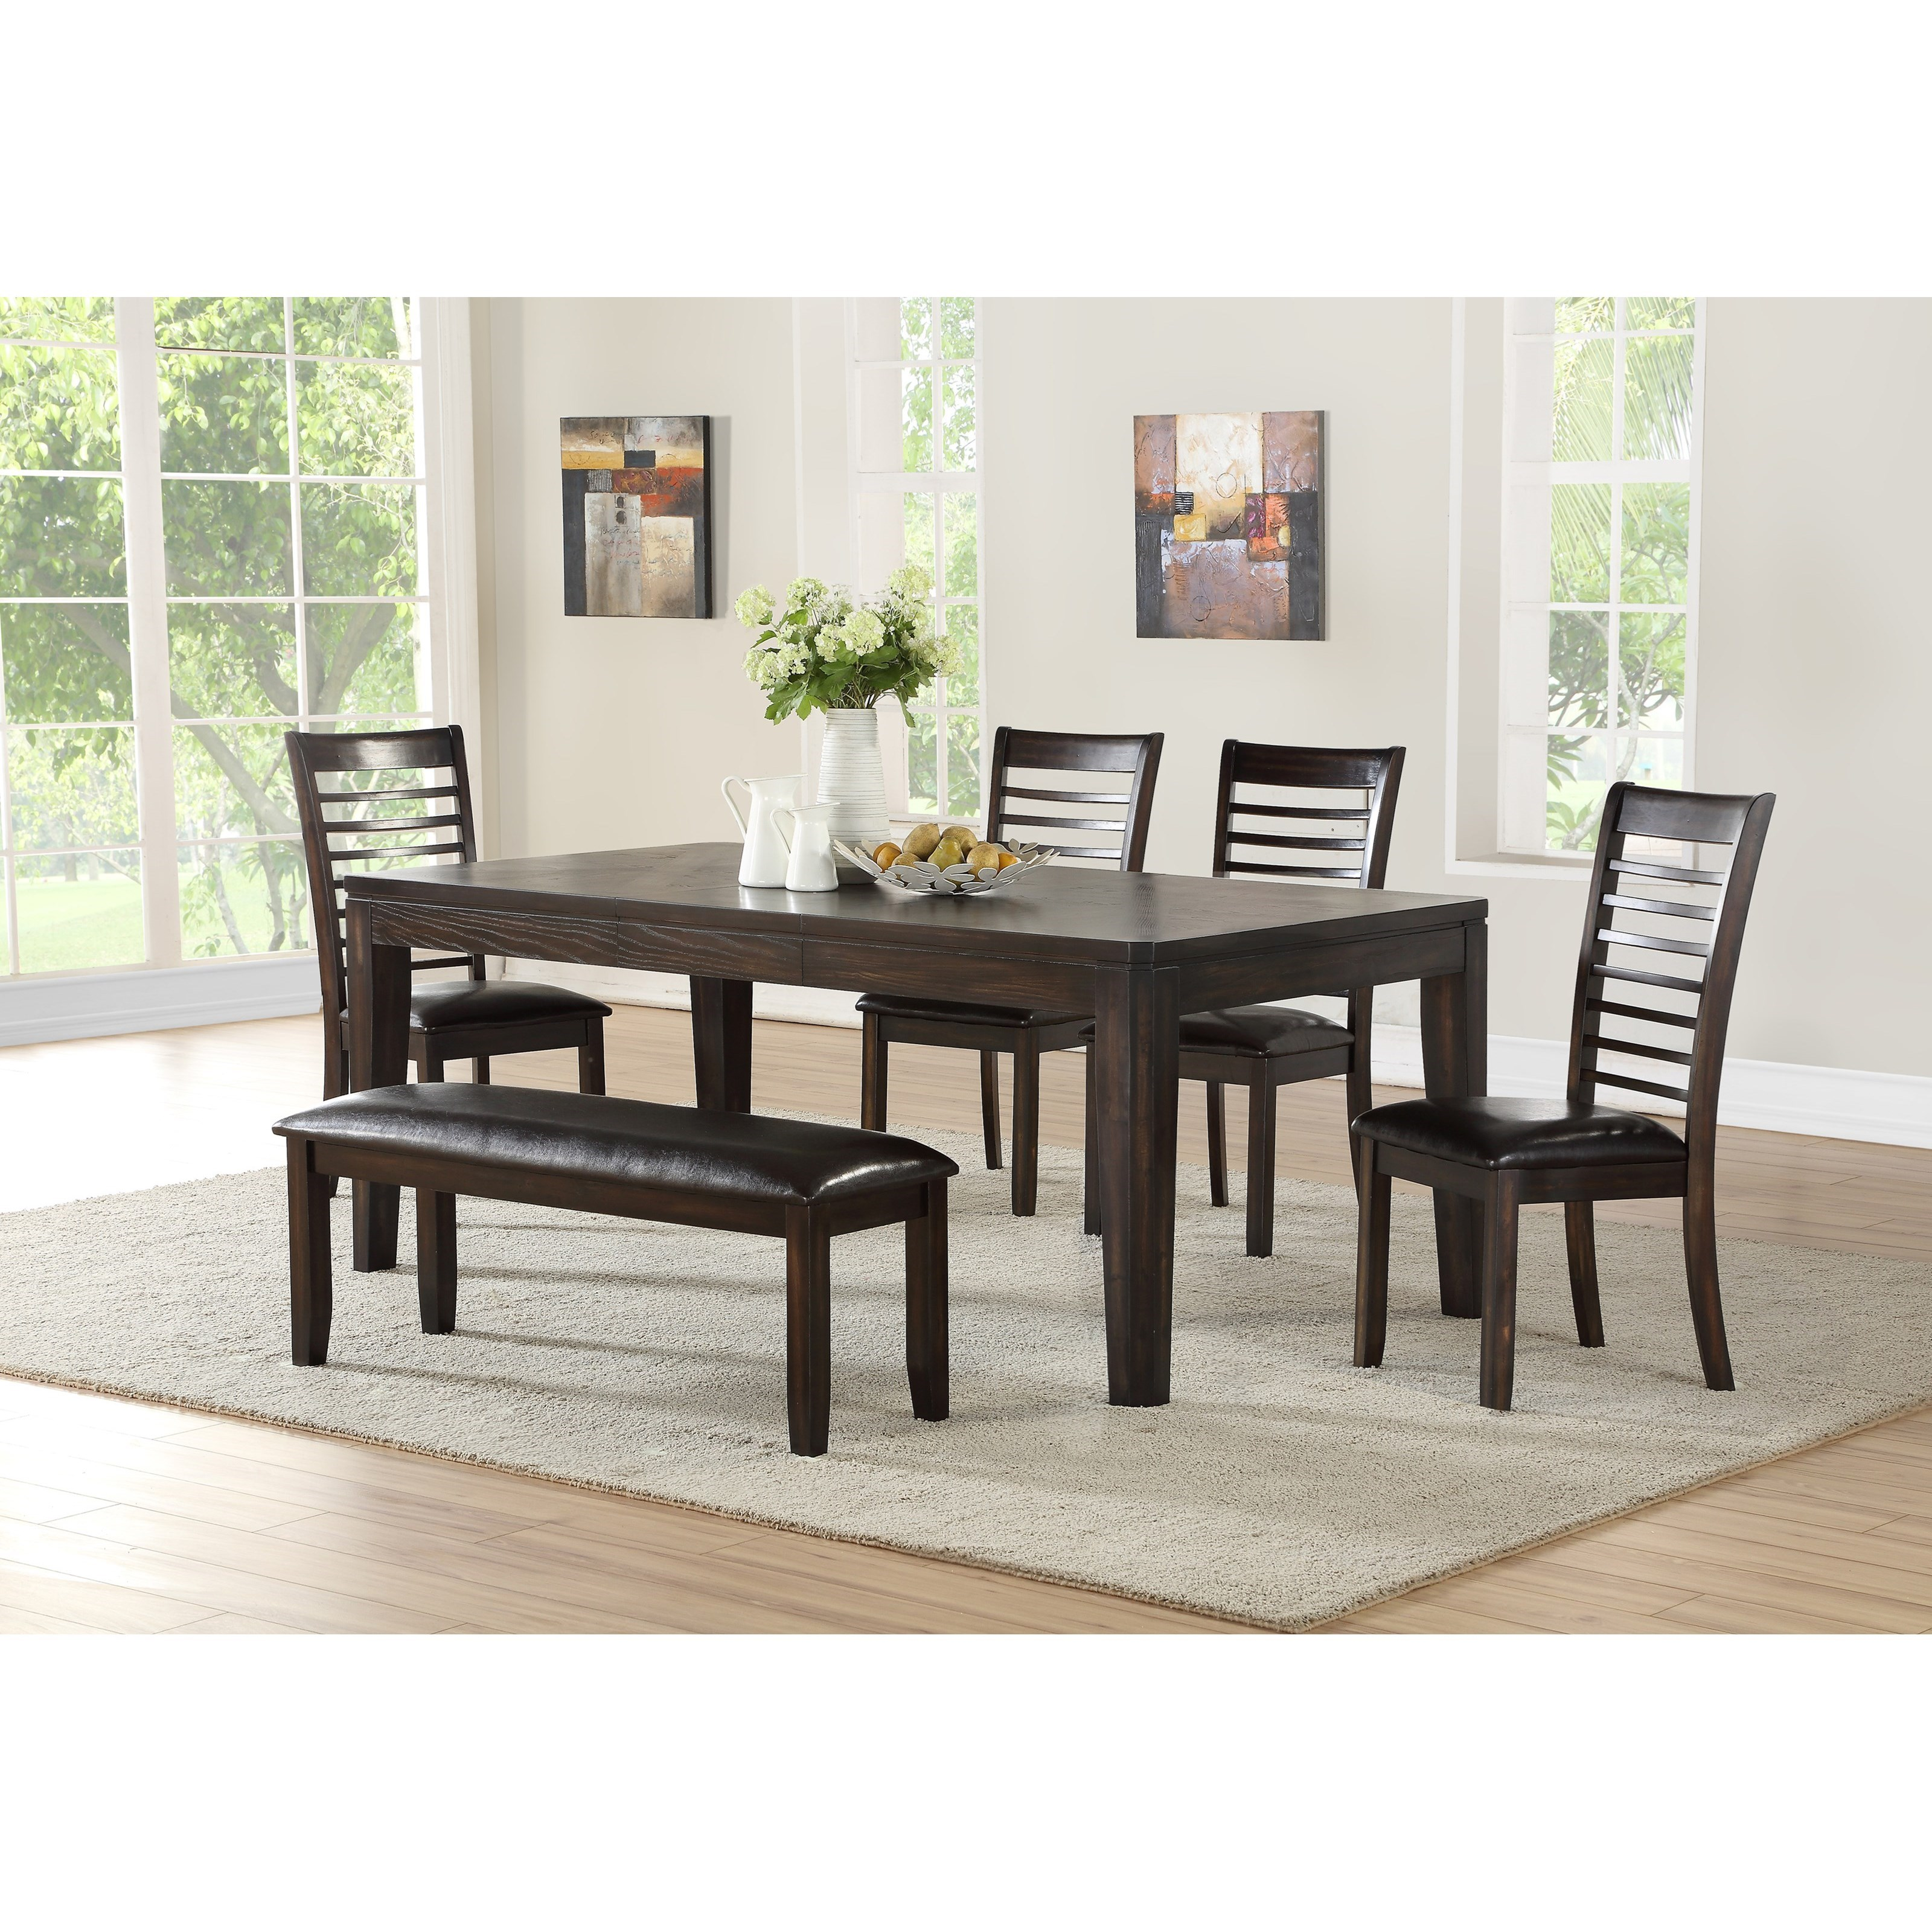 Ally 6 Piece Table and Chair Set with Bench by Steve Silver at Northeast Factory Direct